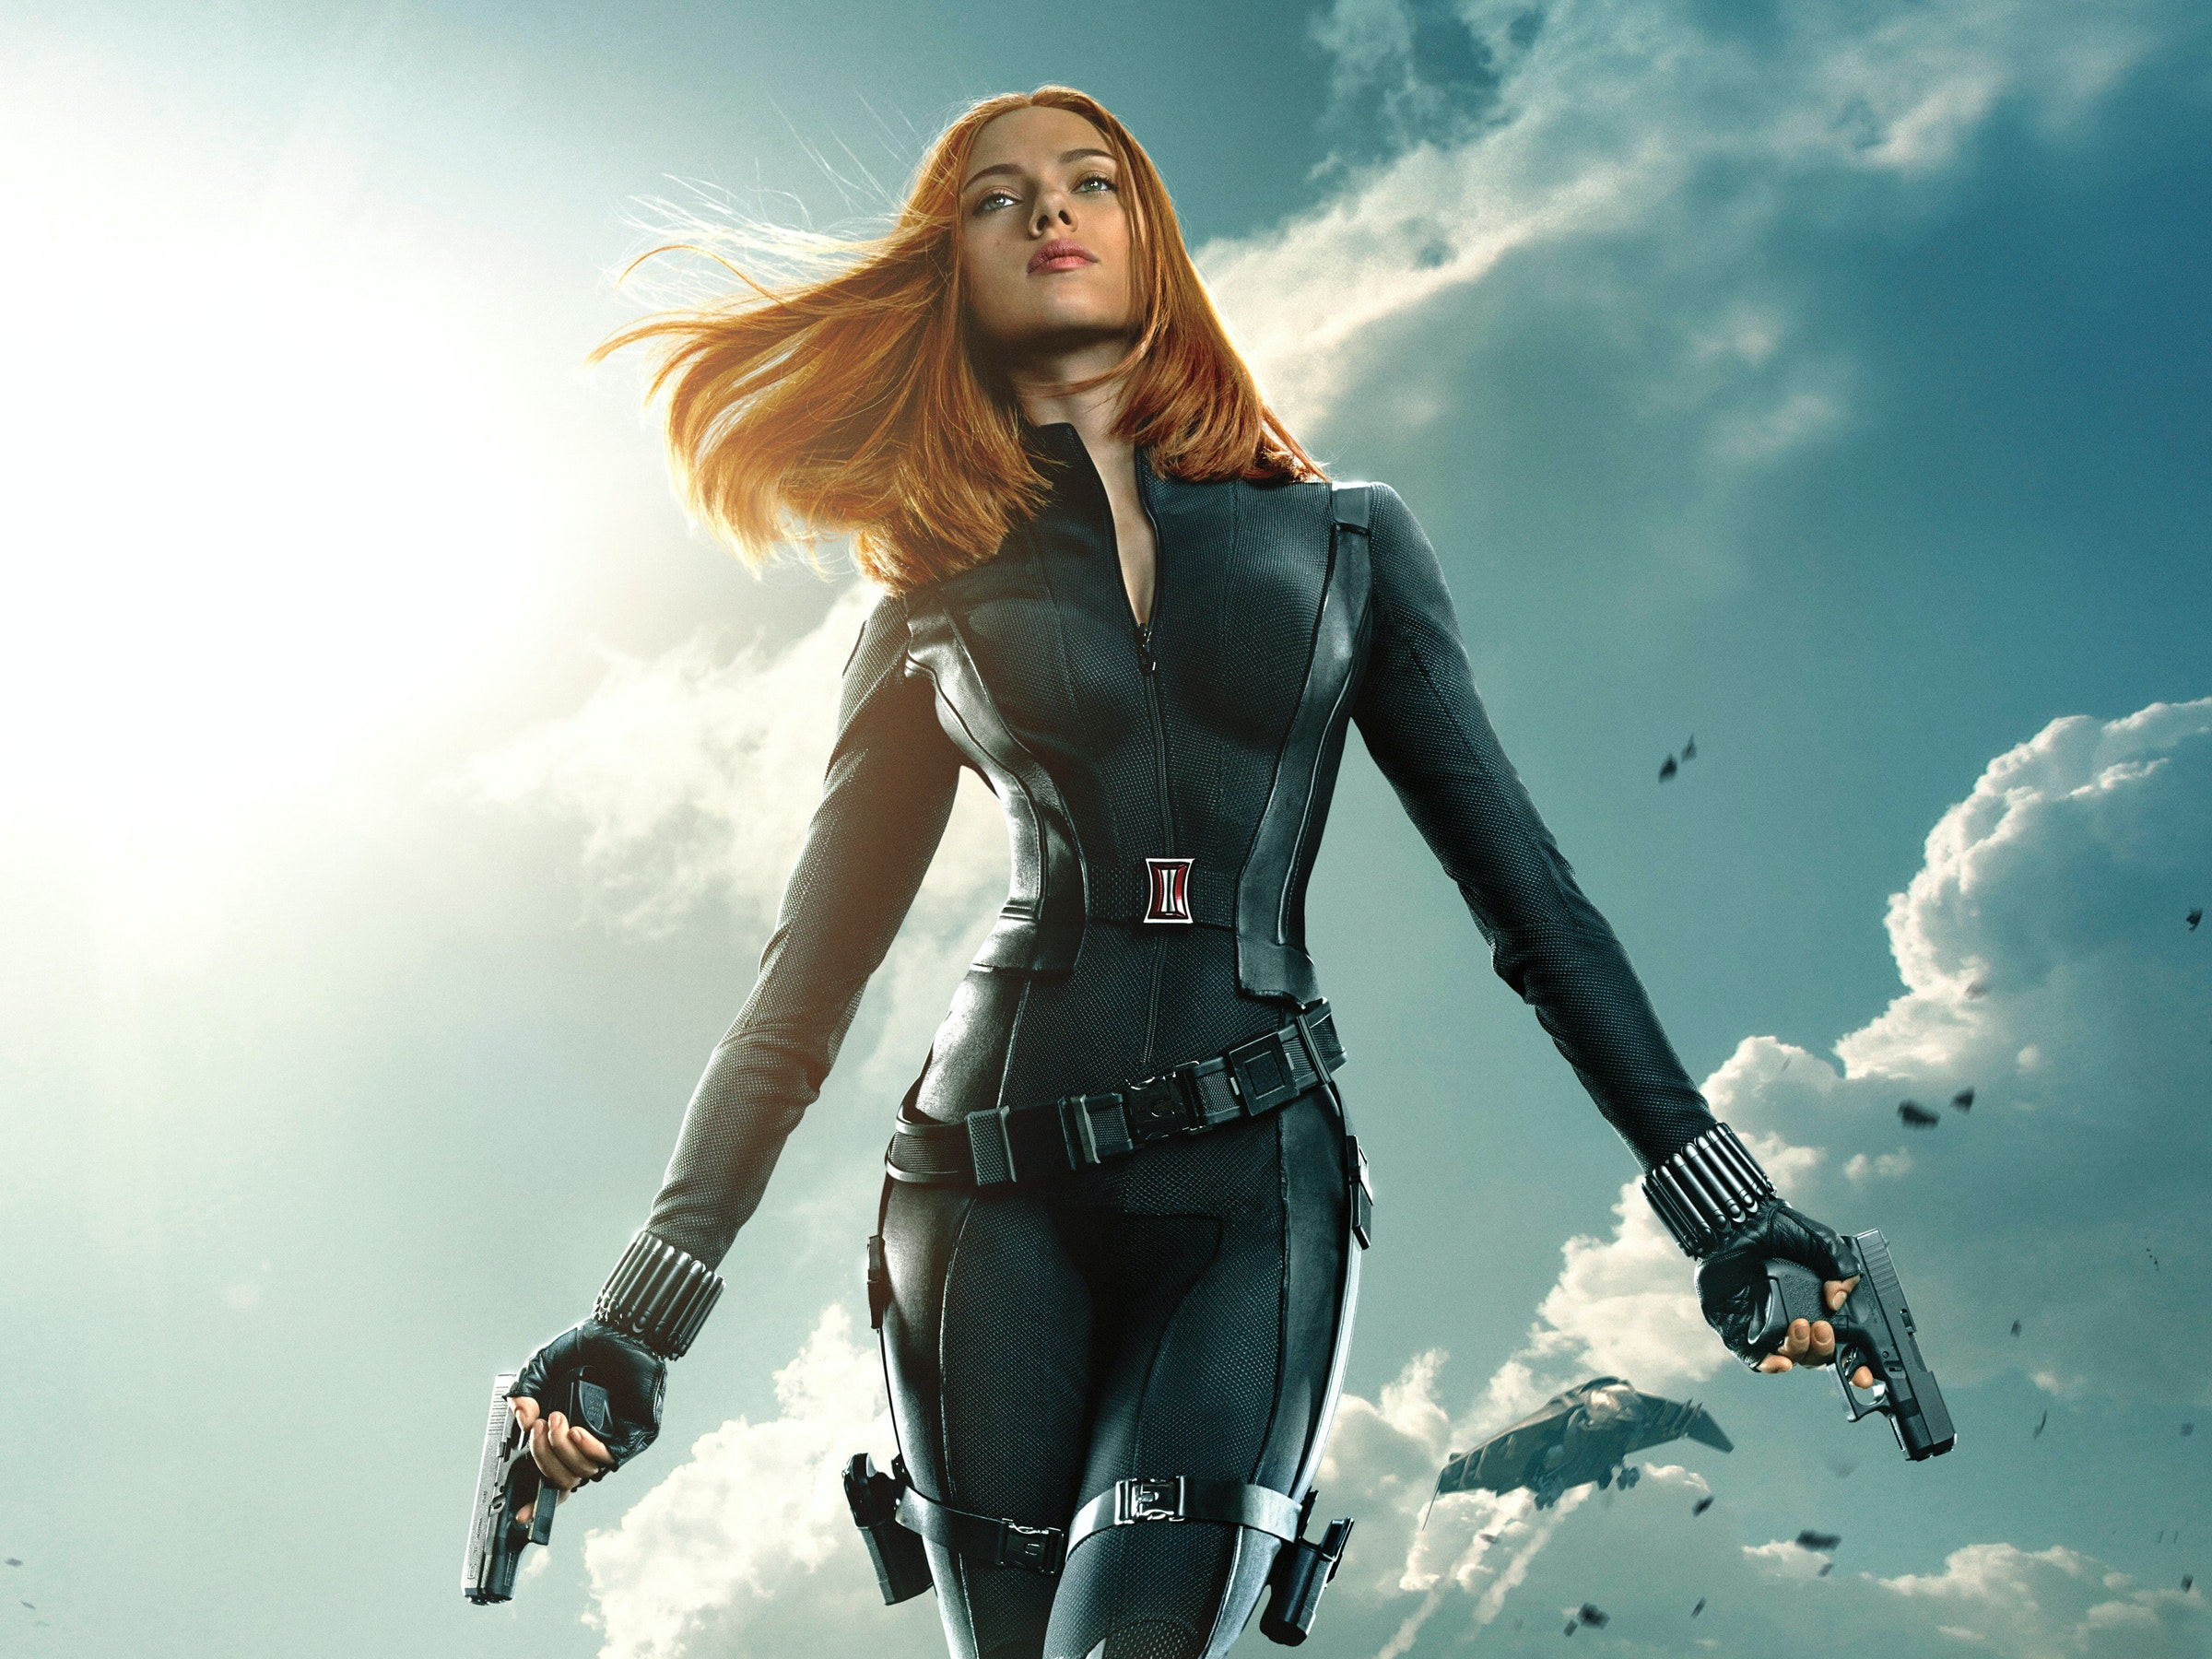 These 3 Comics Prove a 'Black Widow' Movie After 'Civil War' Is a No-Brainer